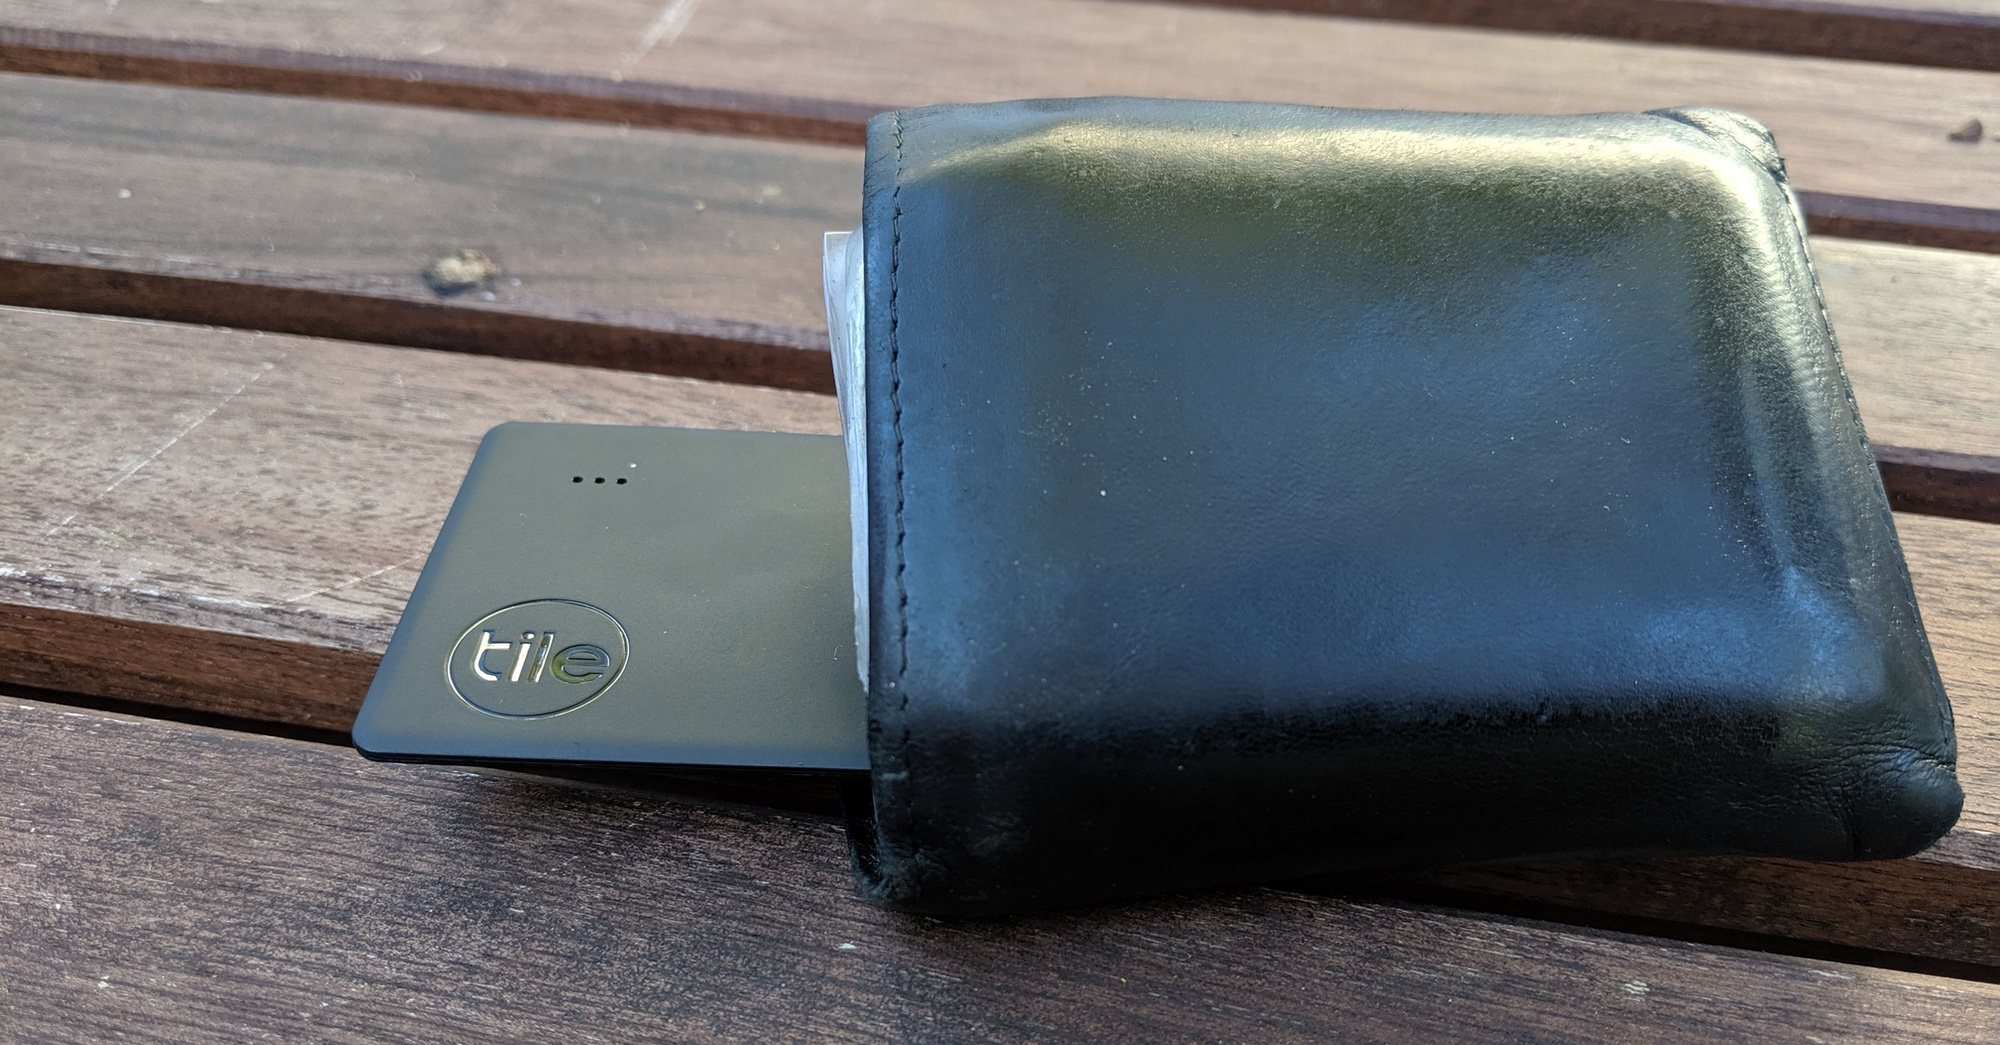 tile slim review a great tracker for